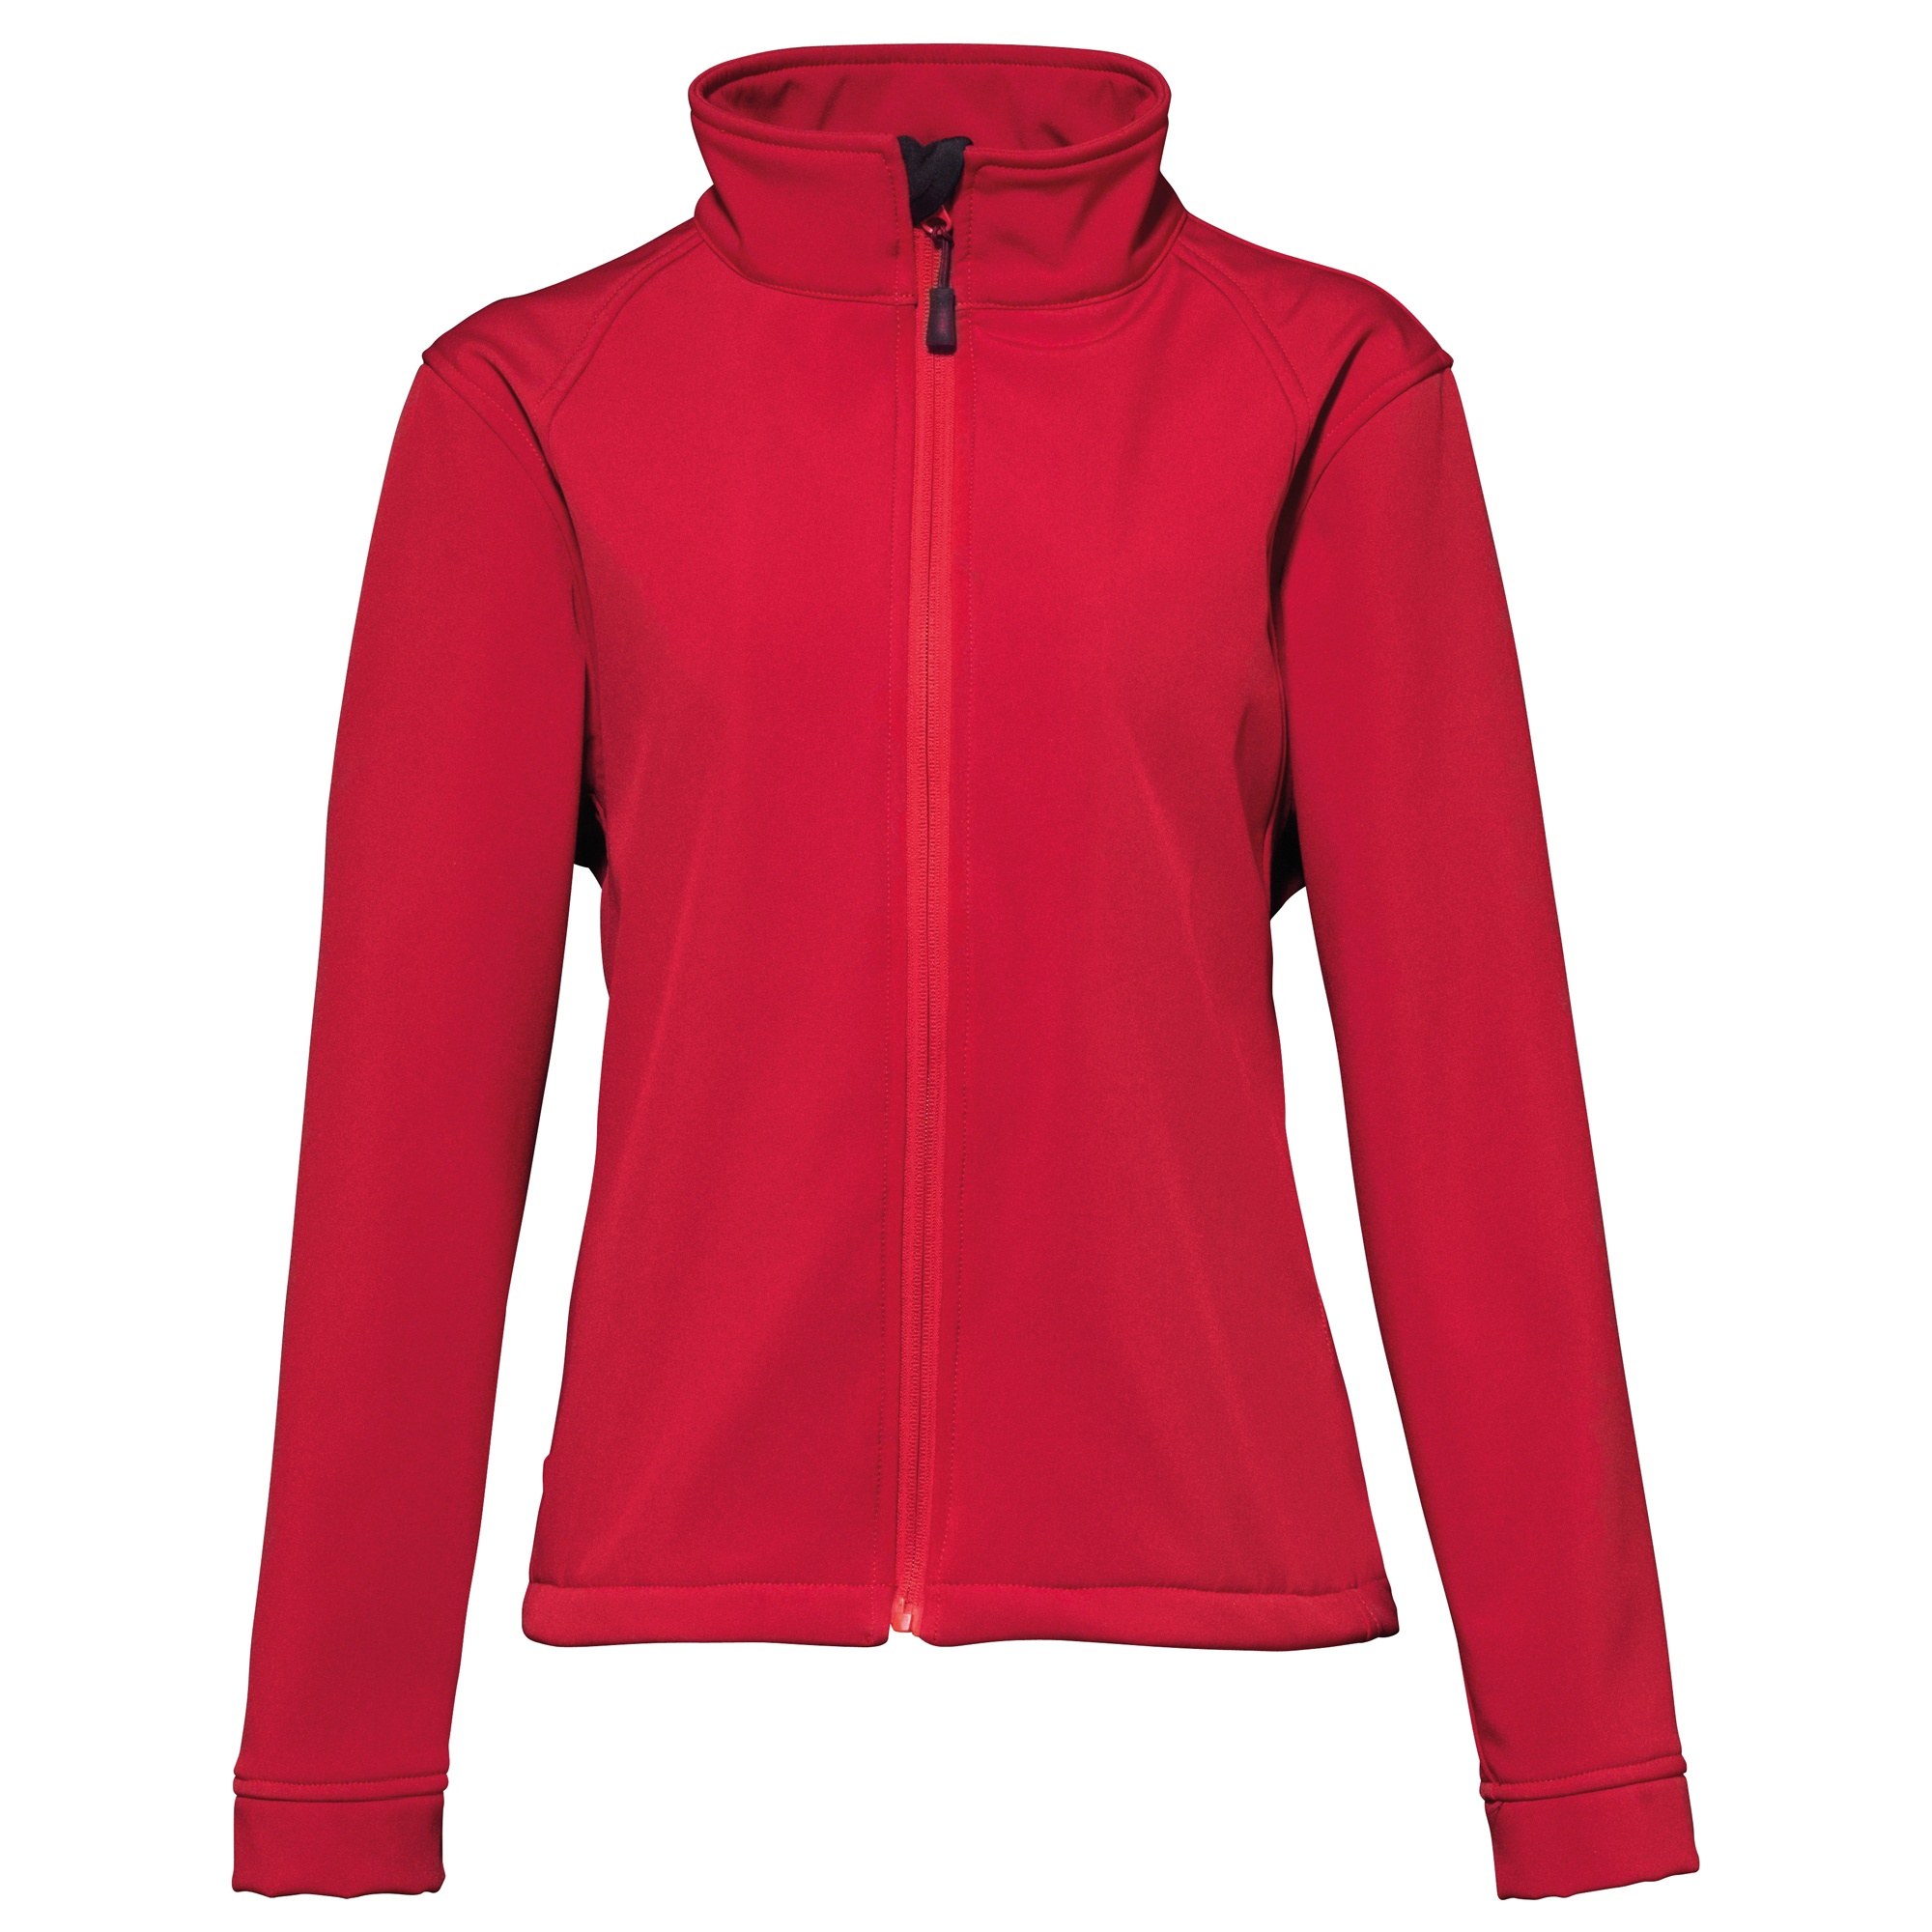 2786 Womens/Ladies 3 Layer Softshell Performance Jacket (Wind & Water Resistant) (M) (Red)